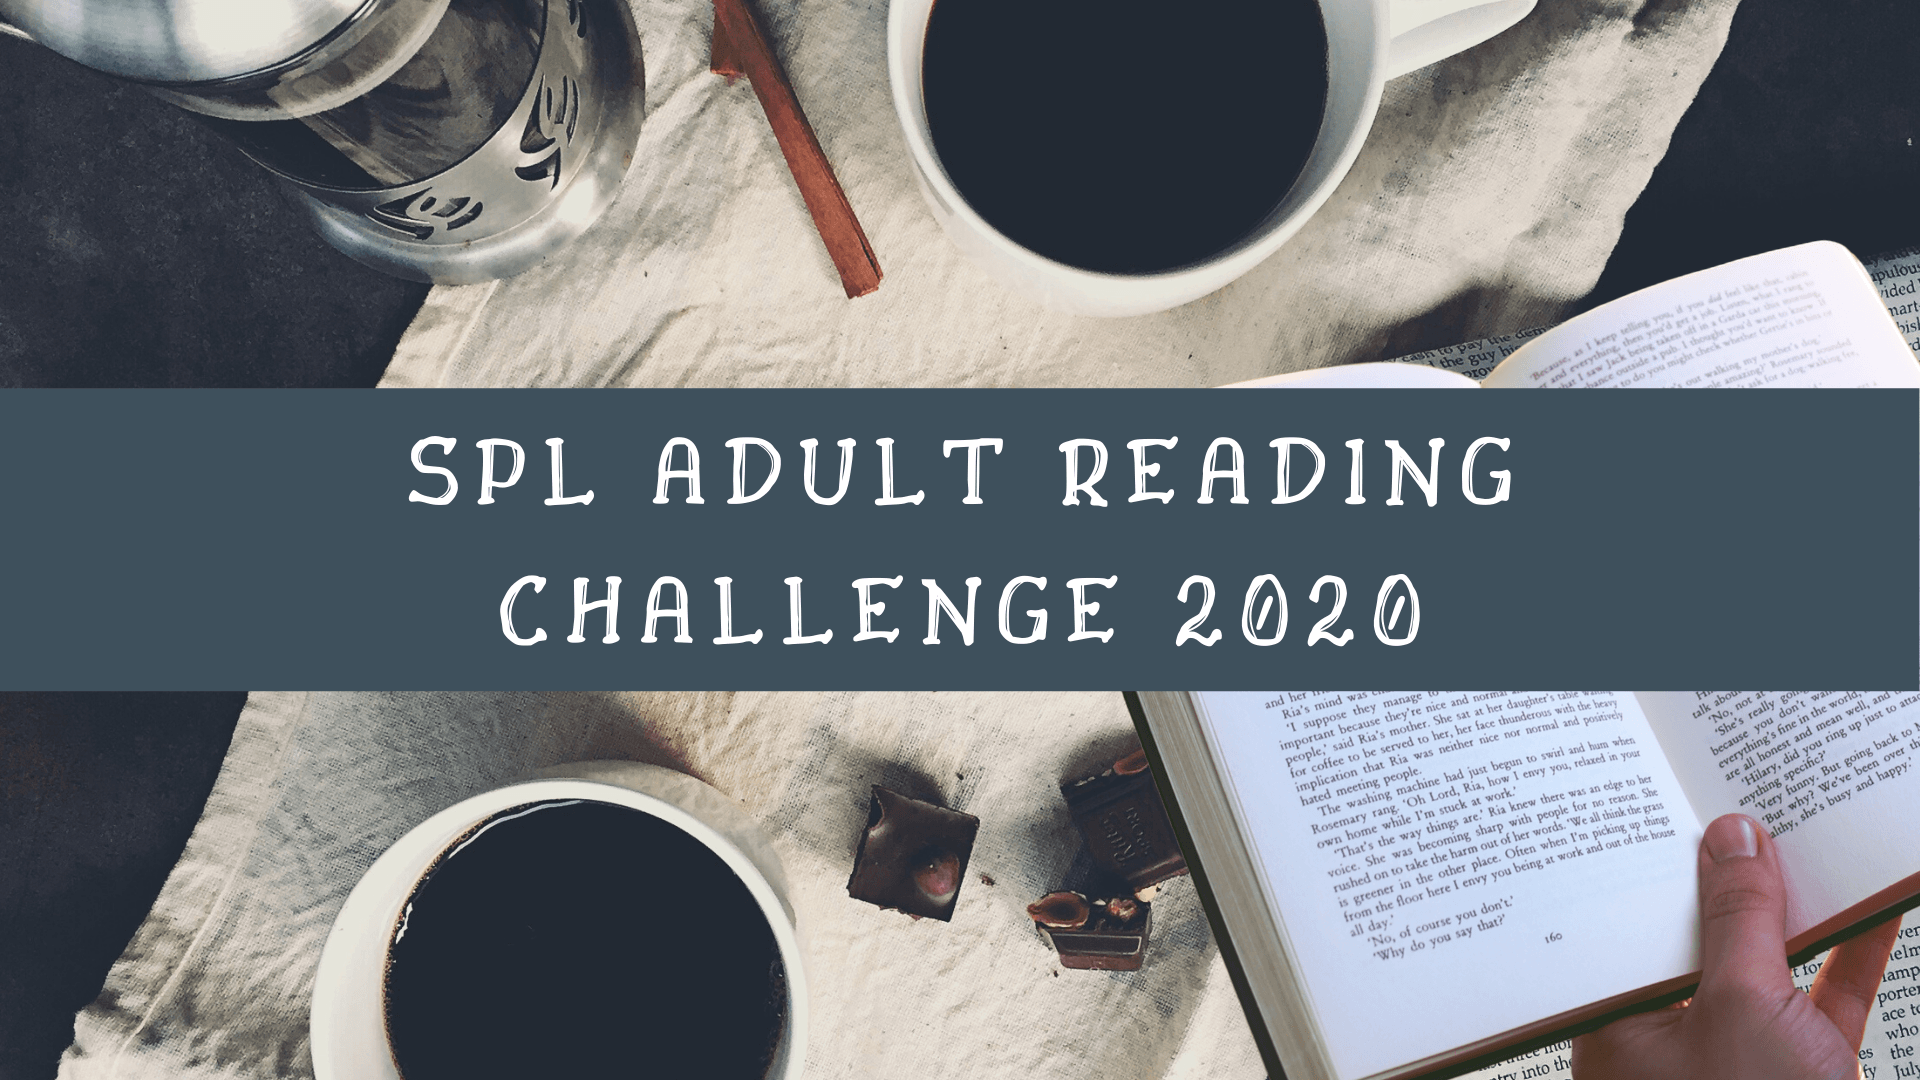 Adult Reading Challenge Scroll